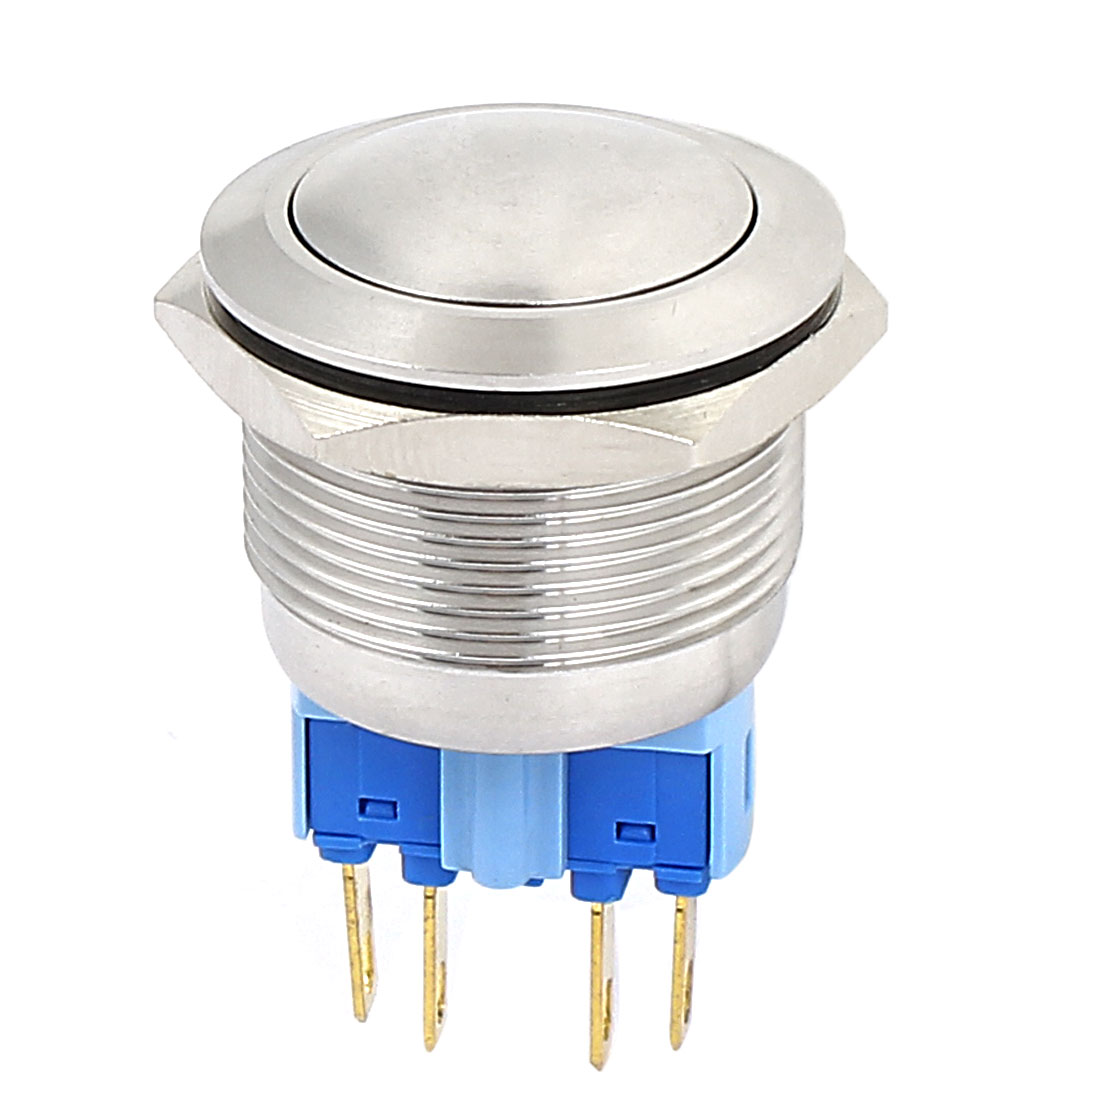 22mm Thread Dia DPST Momentary Stainless Steel Metal Pushbutton Switch